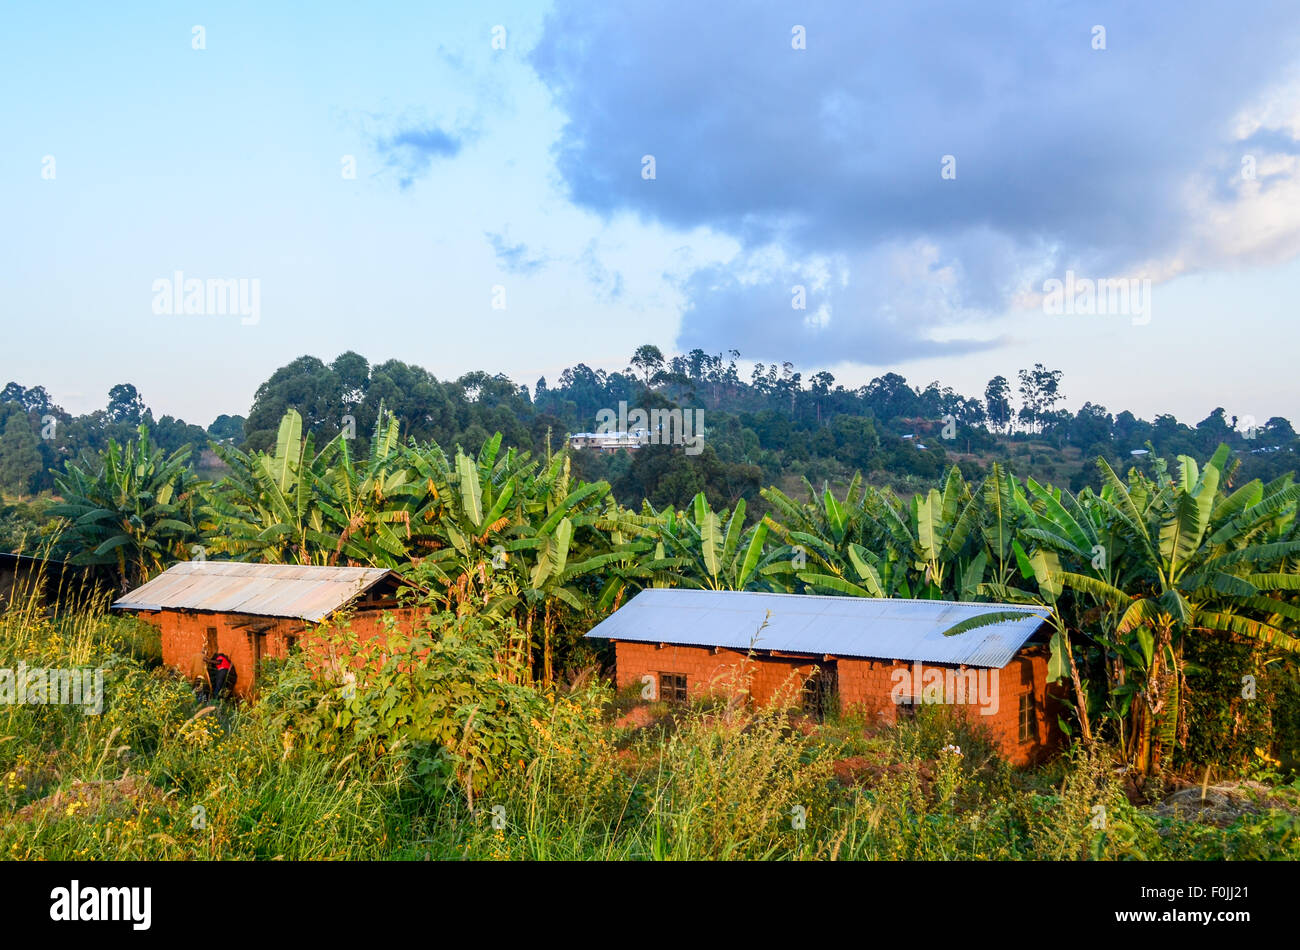 Houses in rural Cameroon - Stock Image